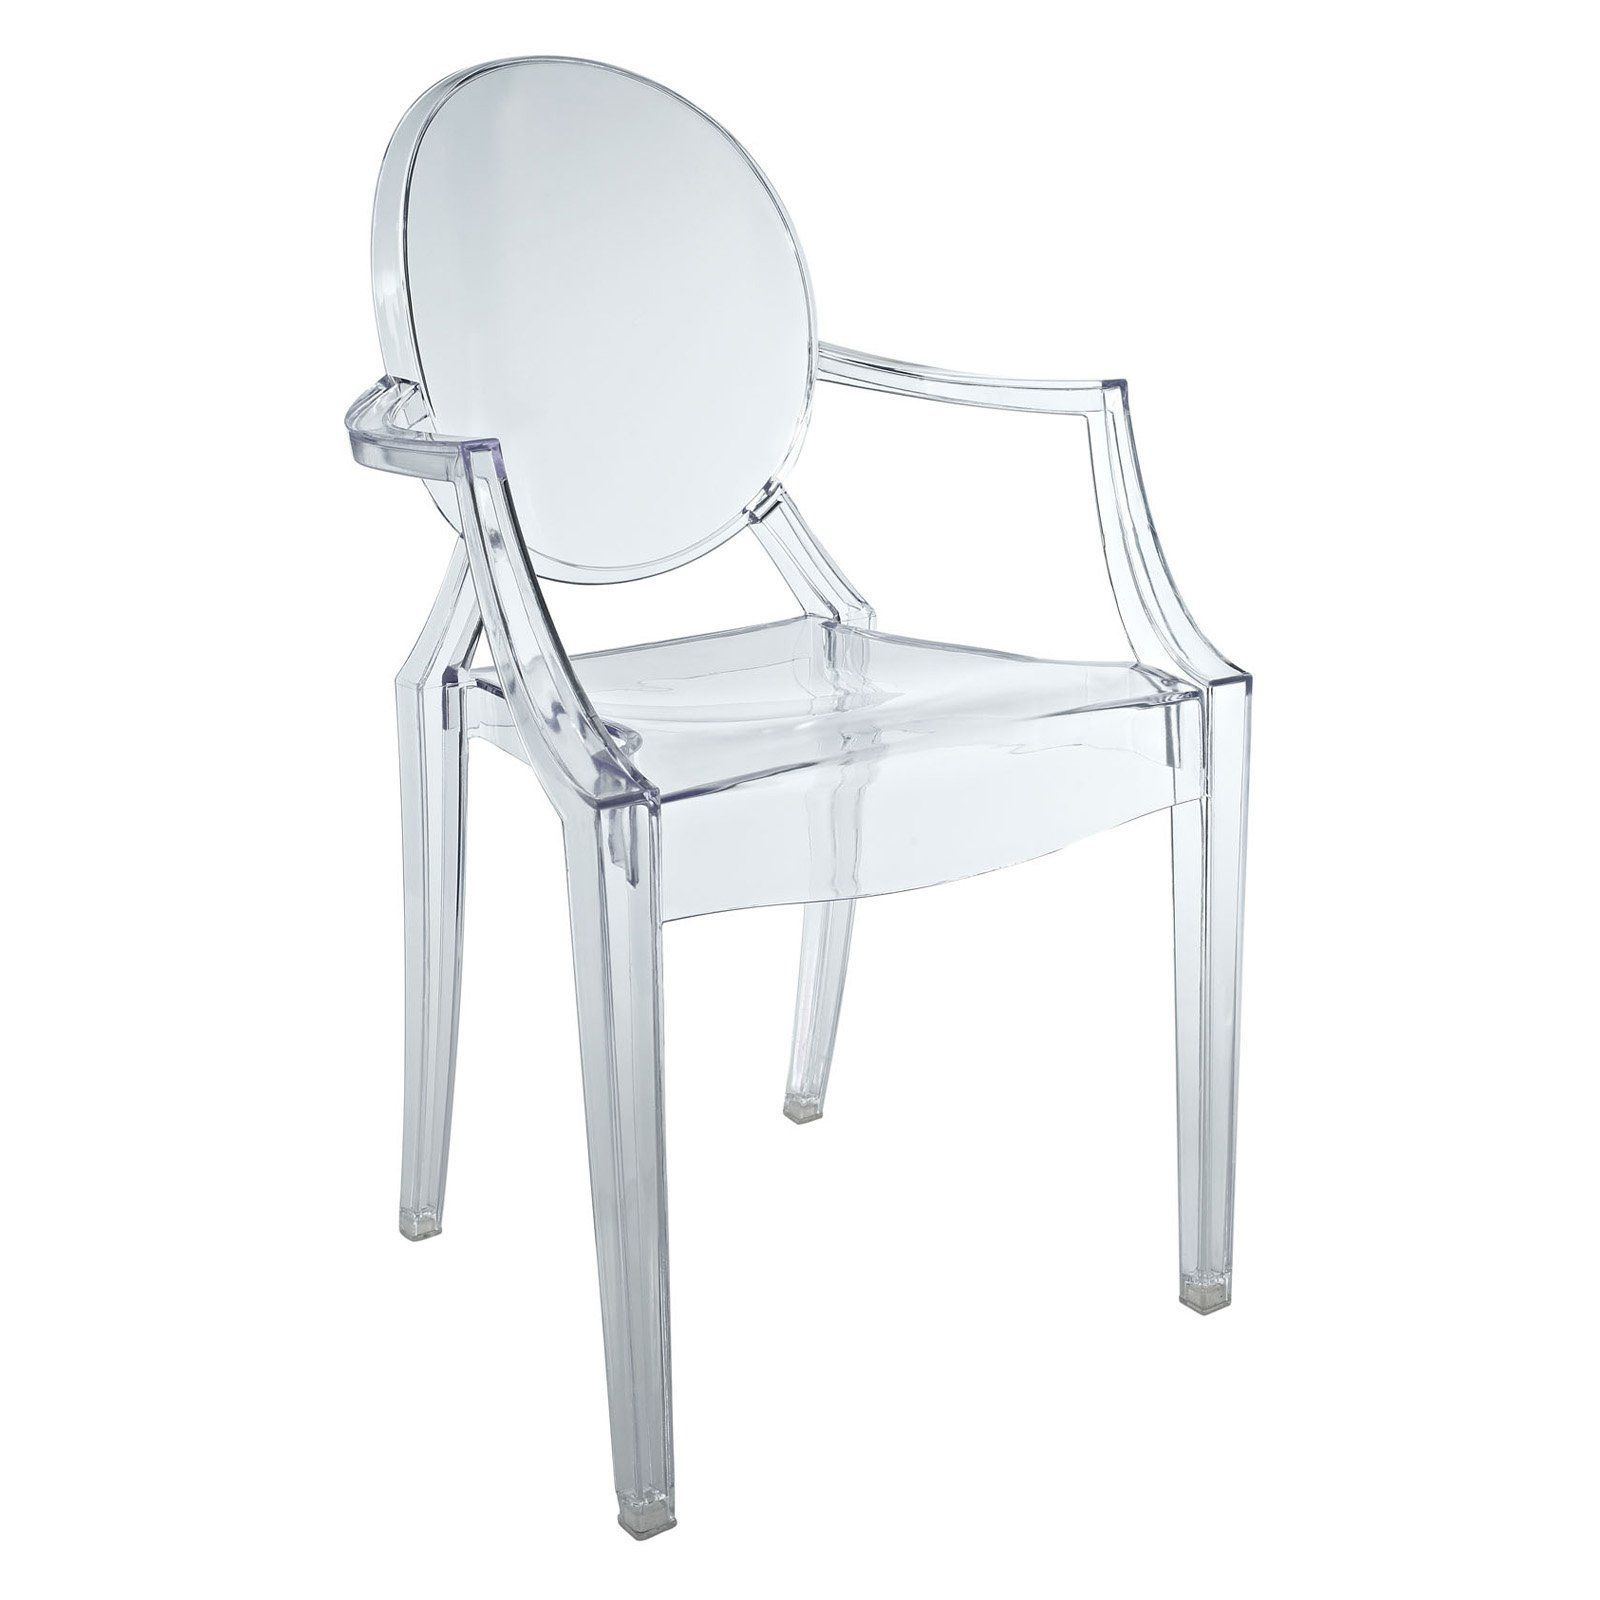 Lexmod Clear Casper Kids Chair | Table and chairs, Kid and Chairs